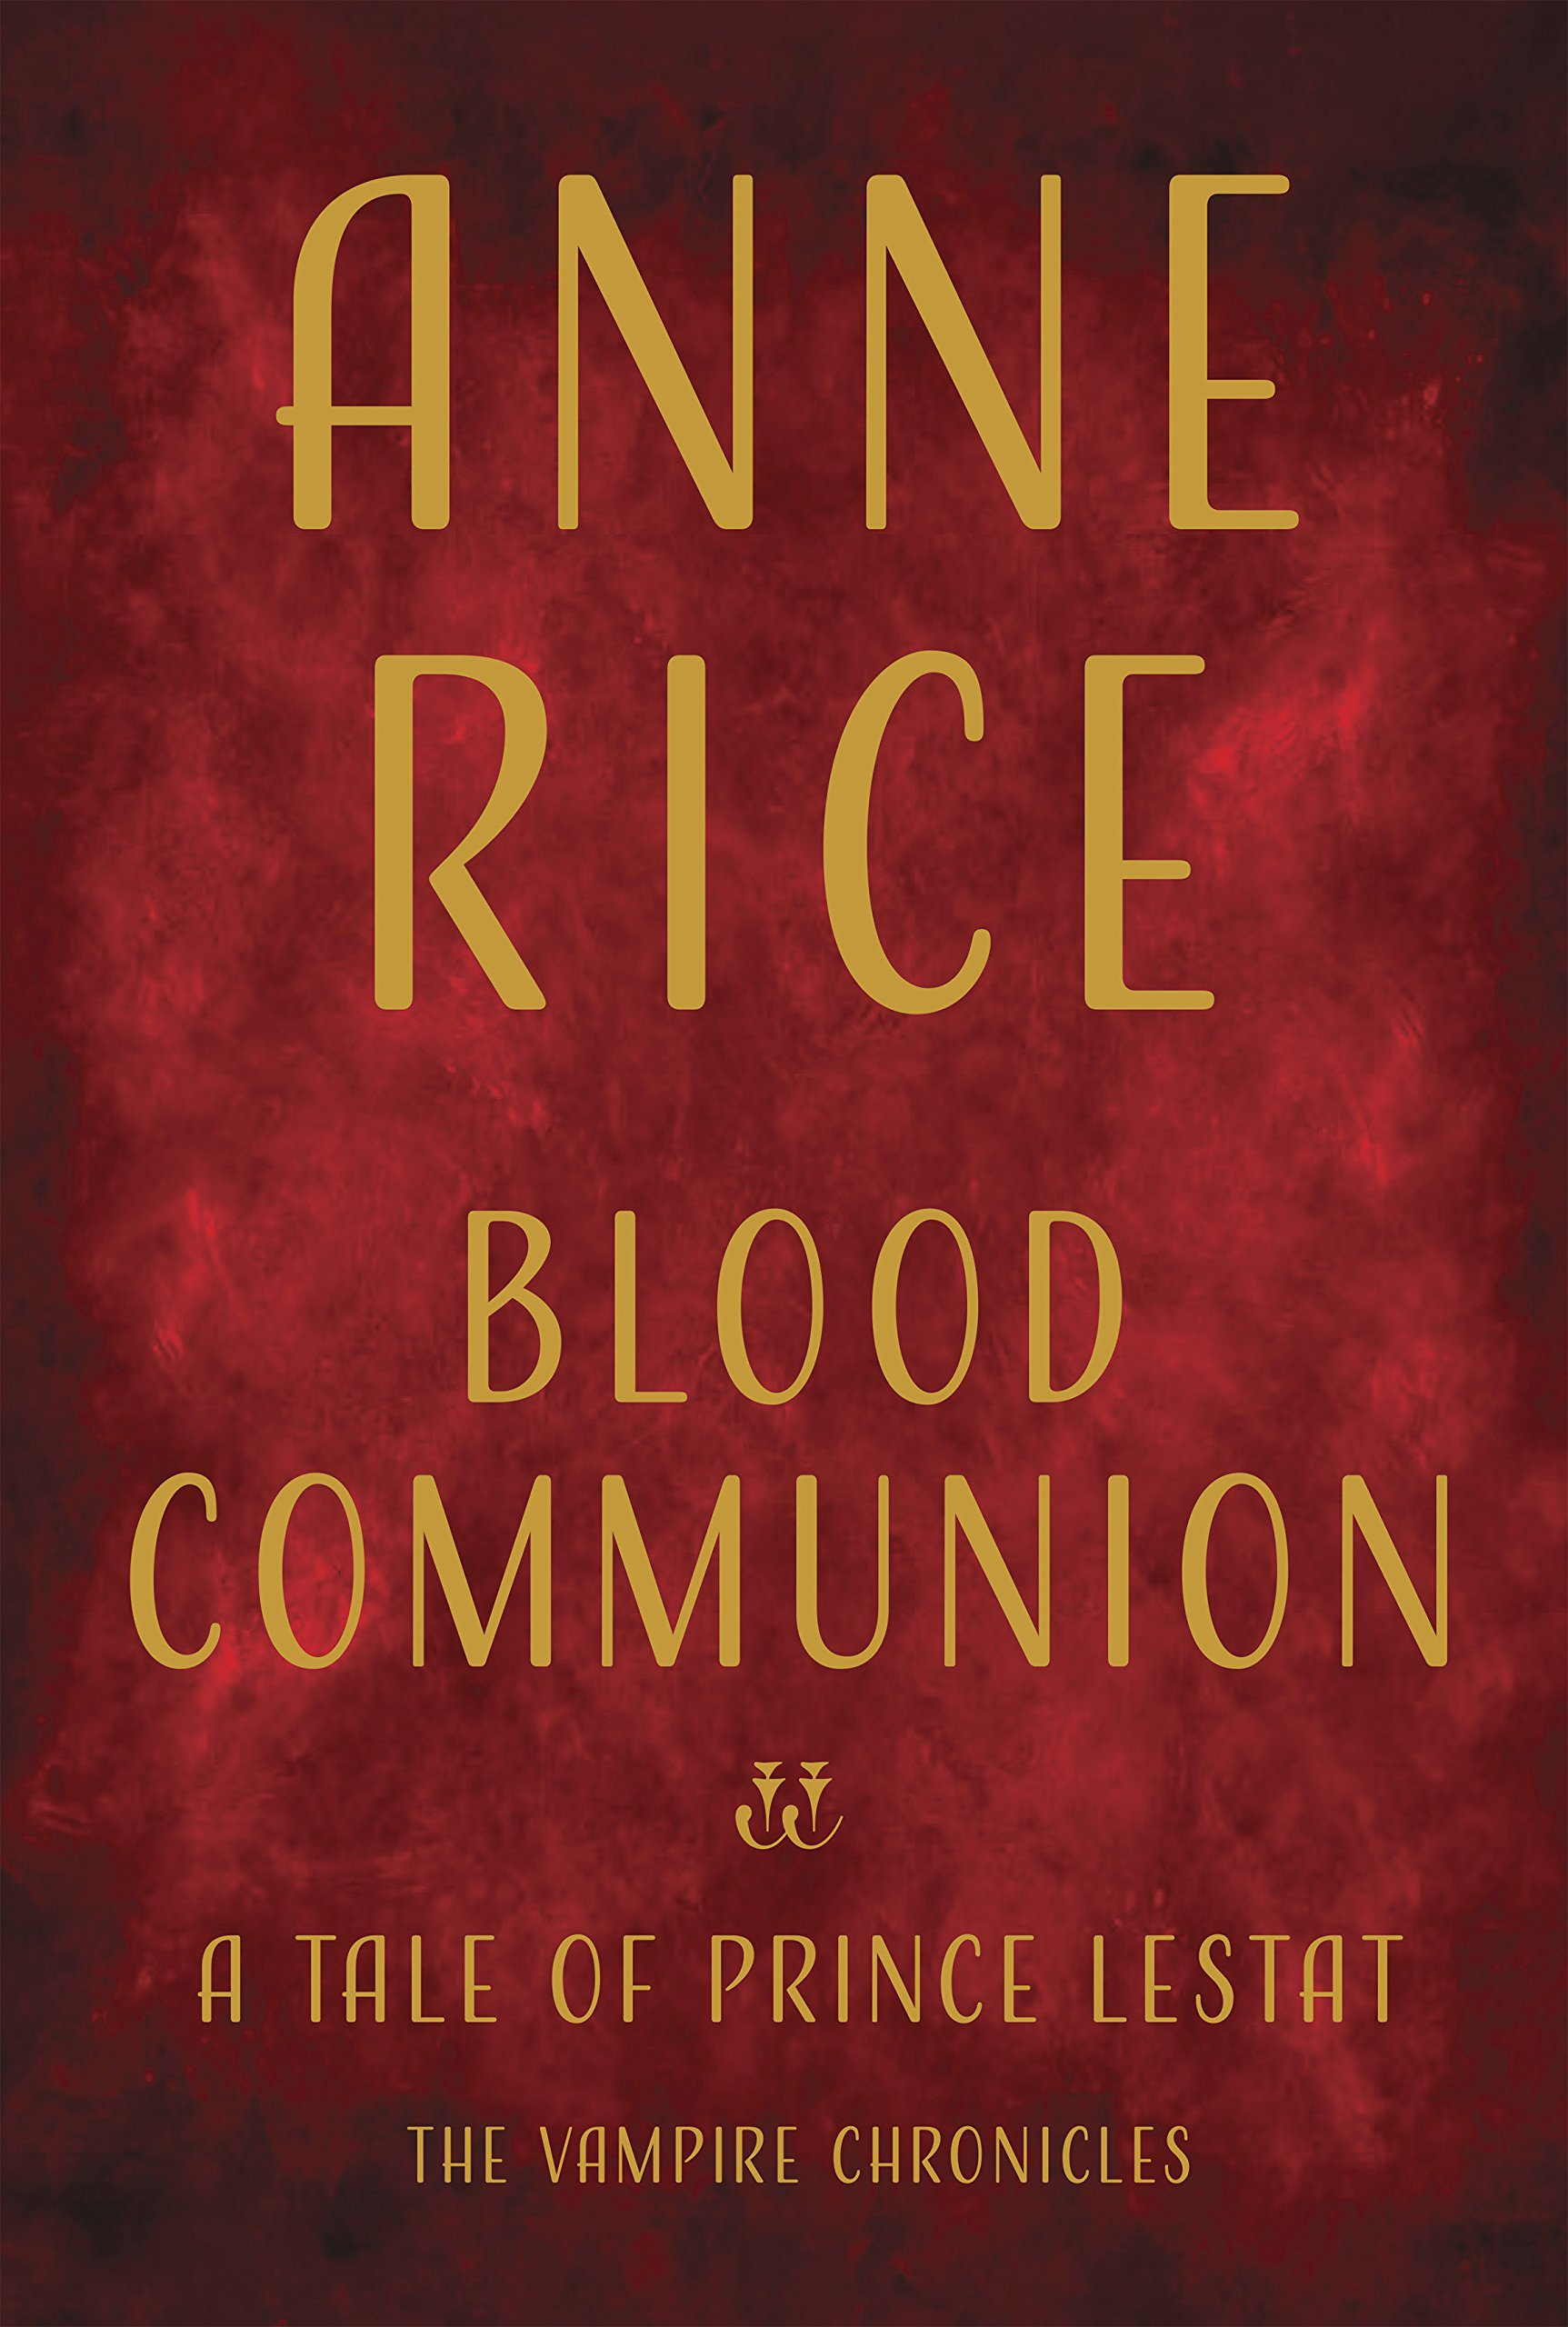 Blood Communion: A Tale of Prince Lestat Vampire Chronicles: Amazon.es: Rice, Anne, Rice, Anne: Libros en idiomas extranjeros